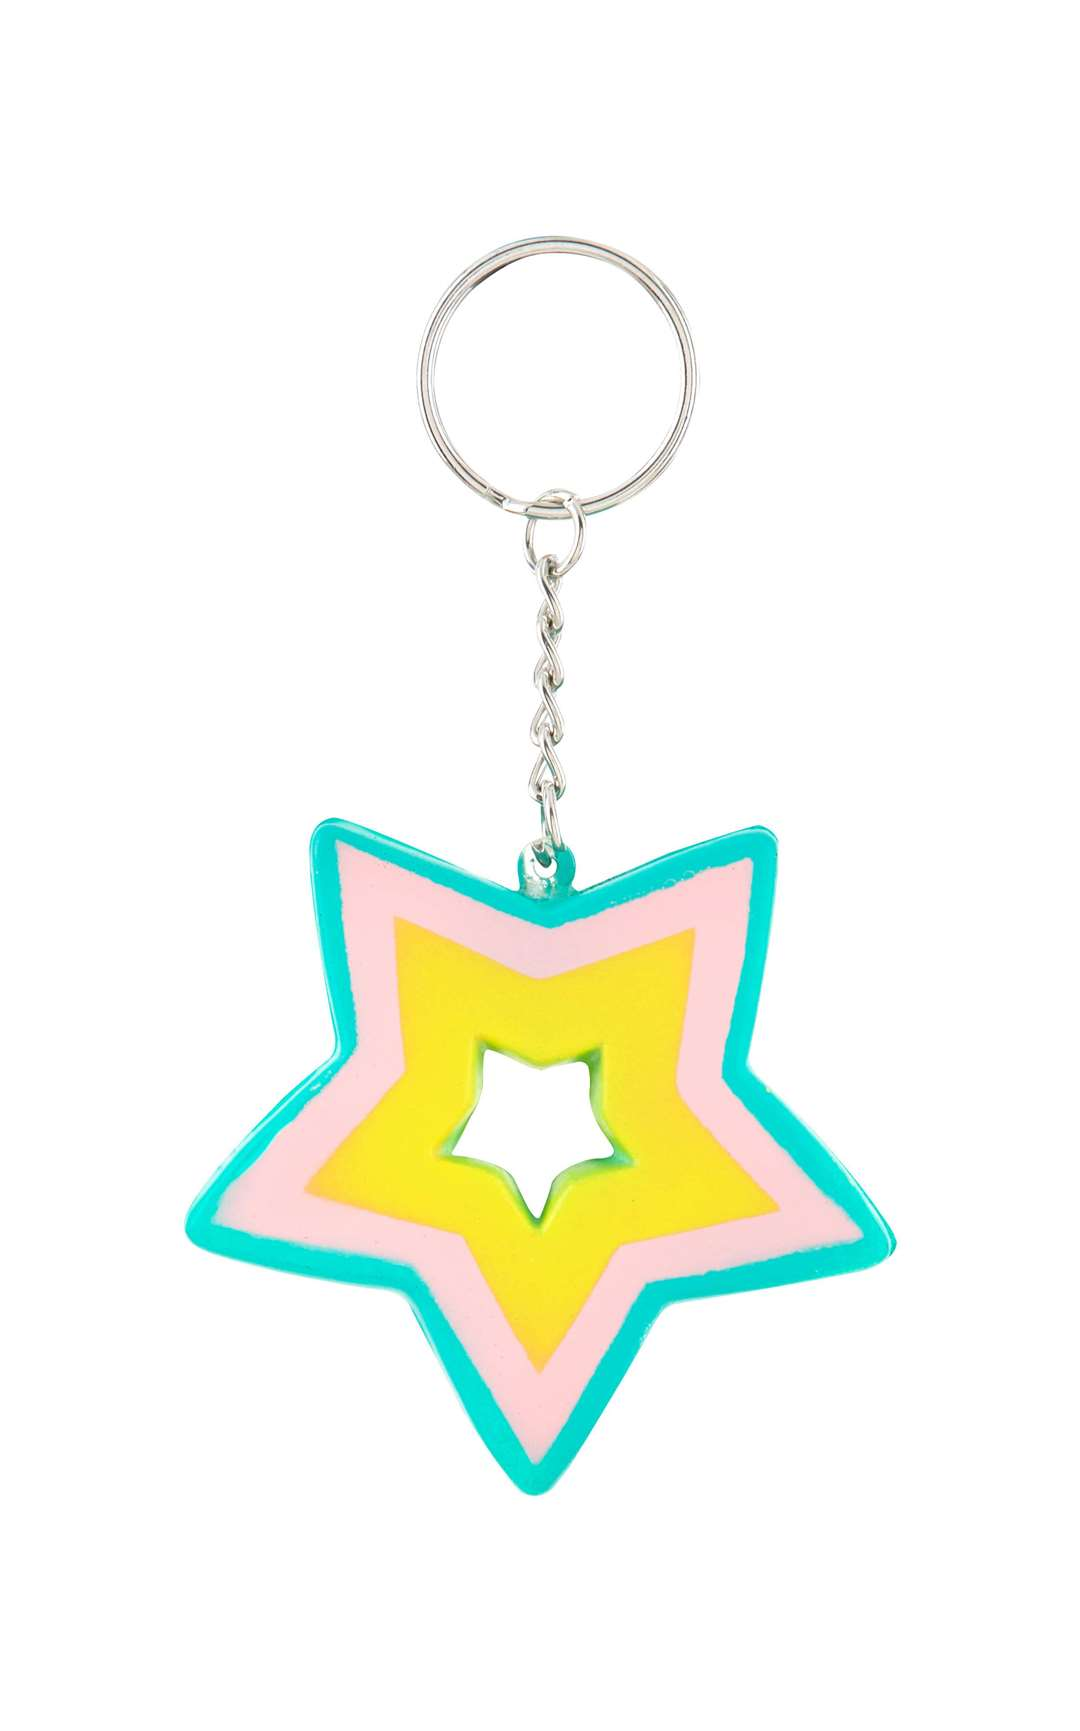 Great keyrings in heart and star shapes, £1 each